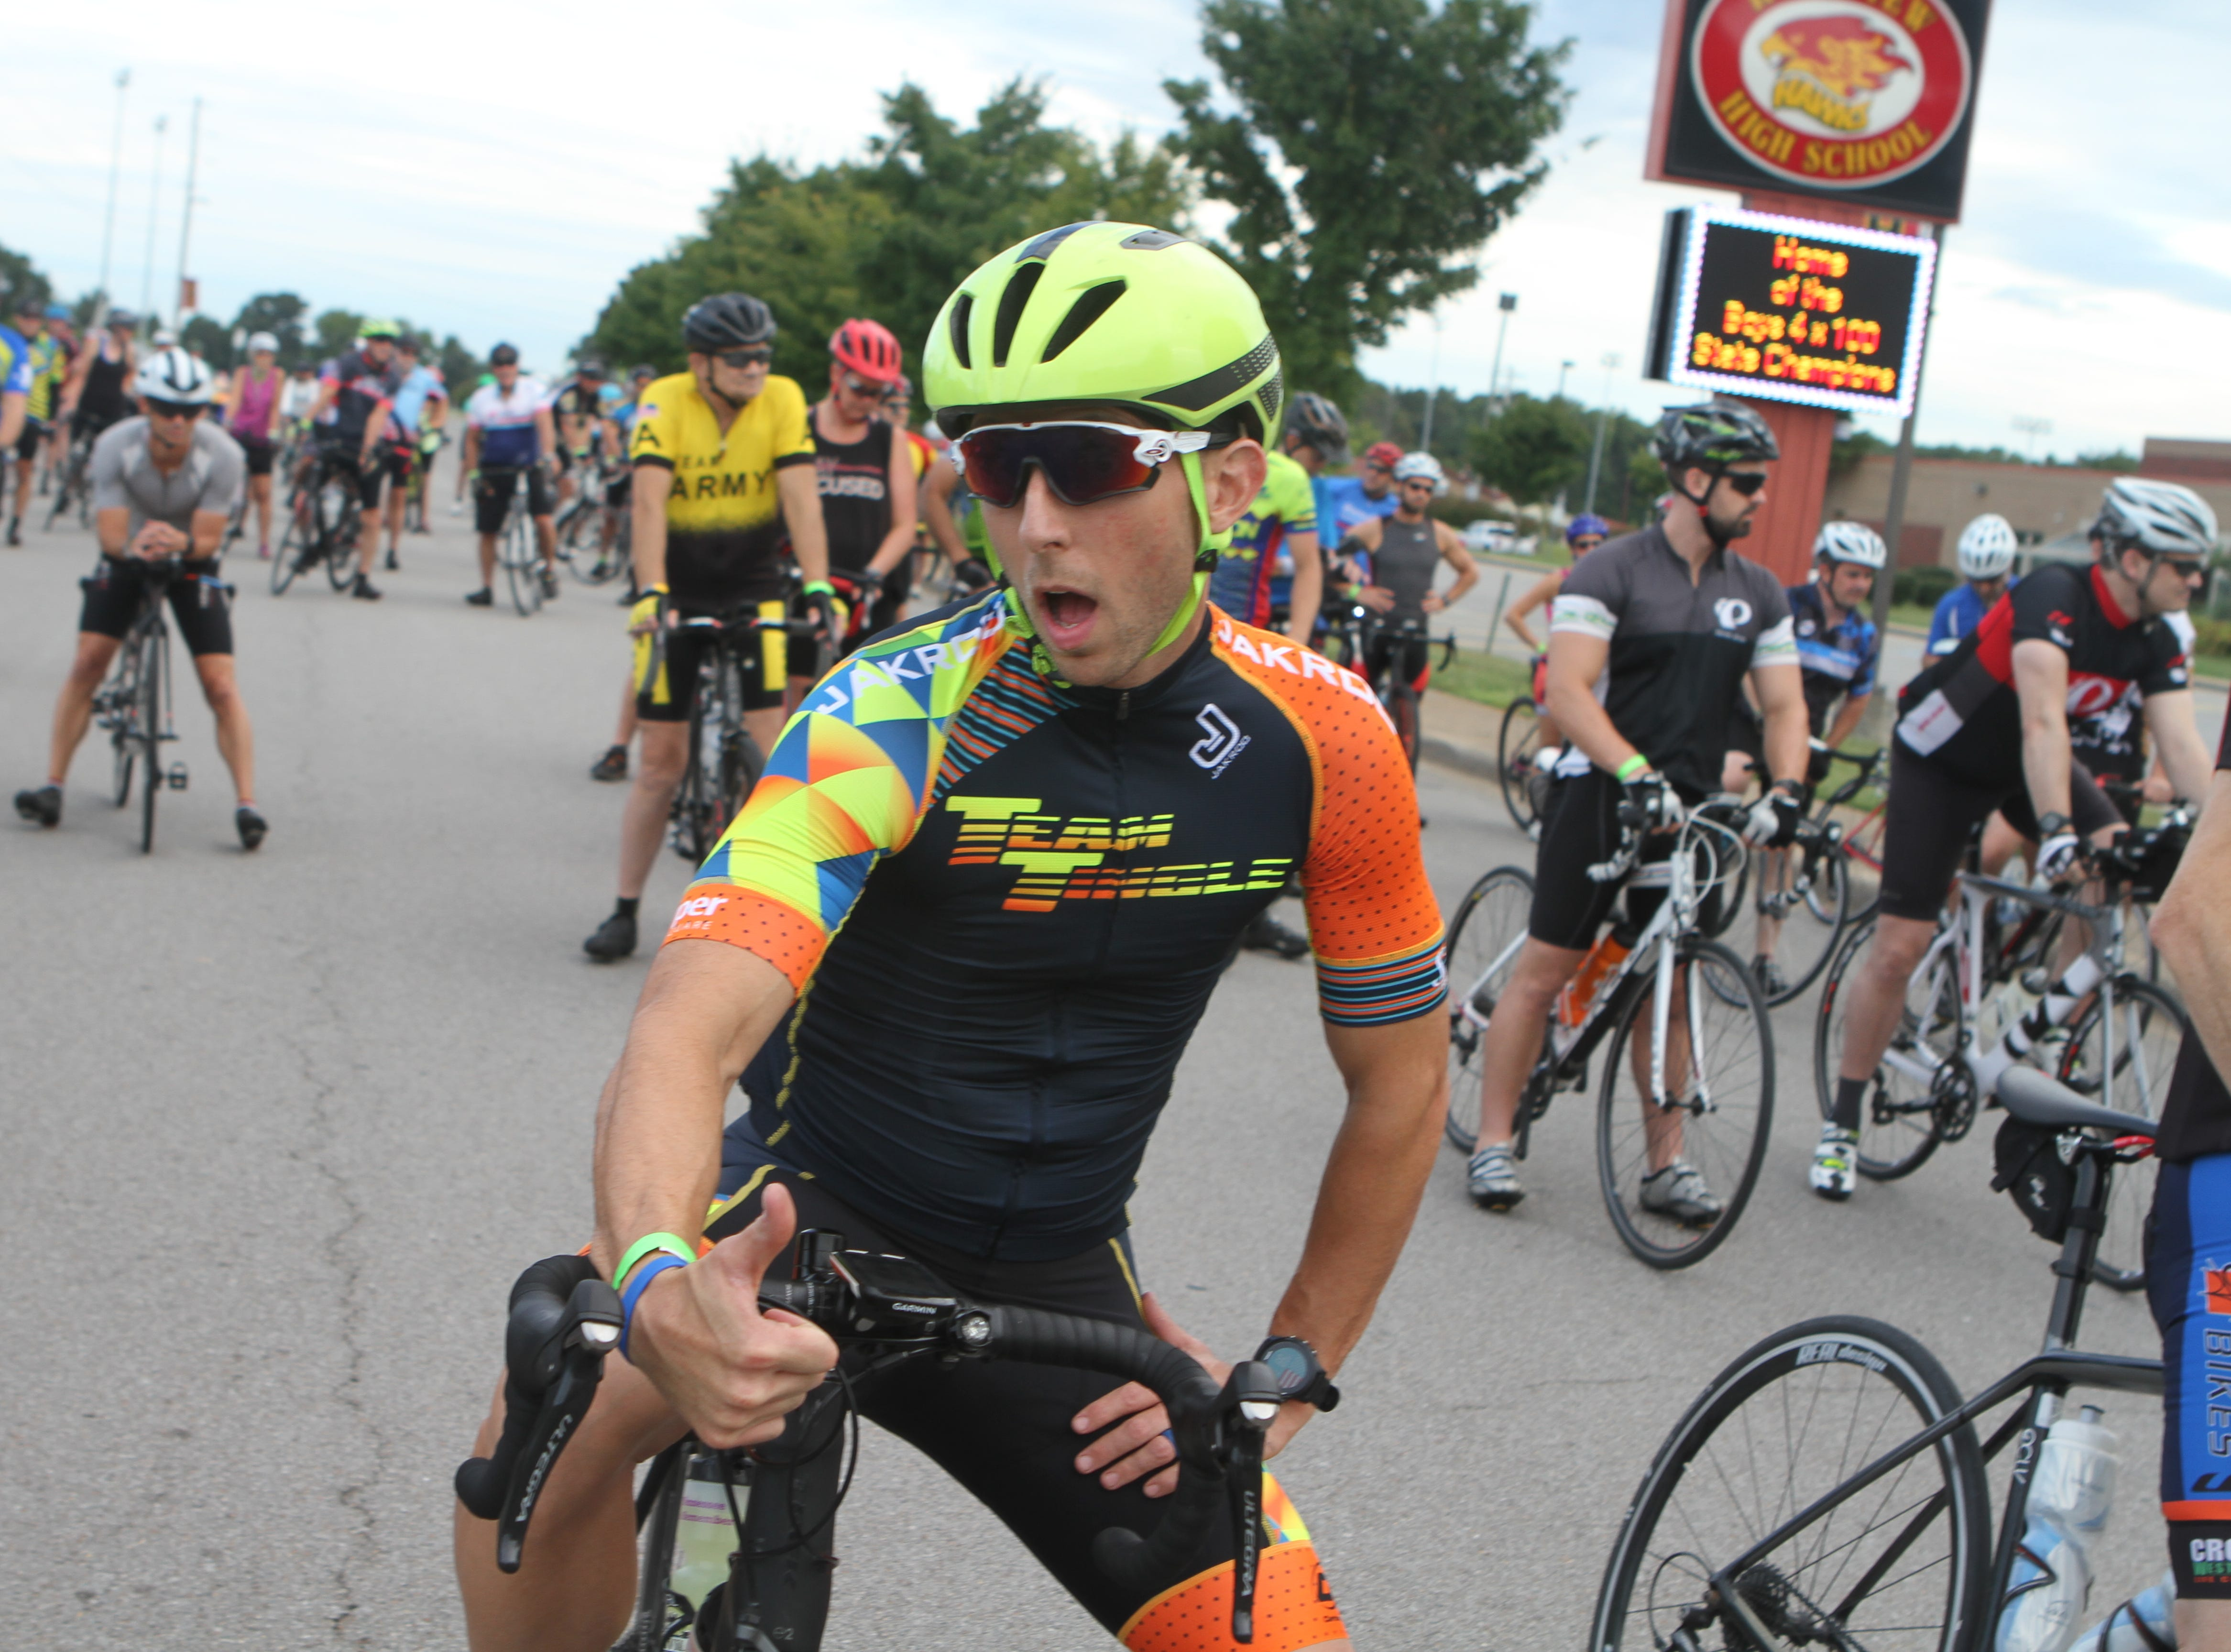 Clarksville's Sunrise Rotary club hosted its annual Sunrise Century Bike Ride Saturday, with more than 700 riders participating at distances of 33, 62 or 100 miles.